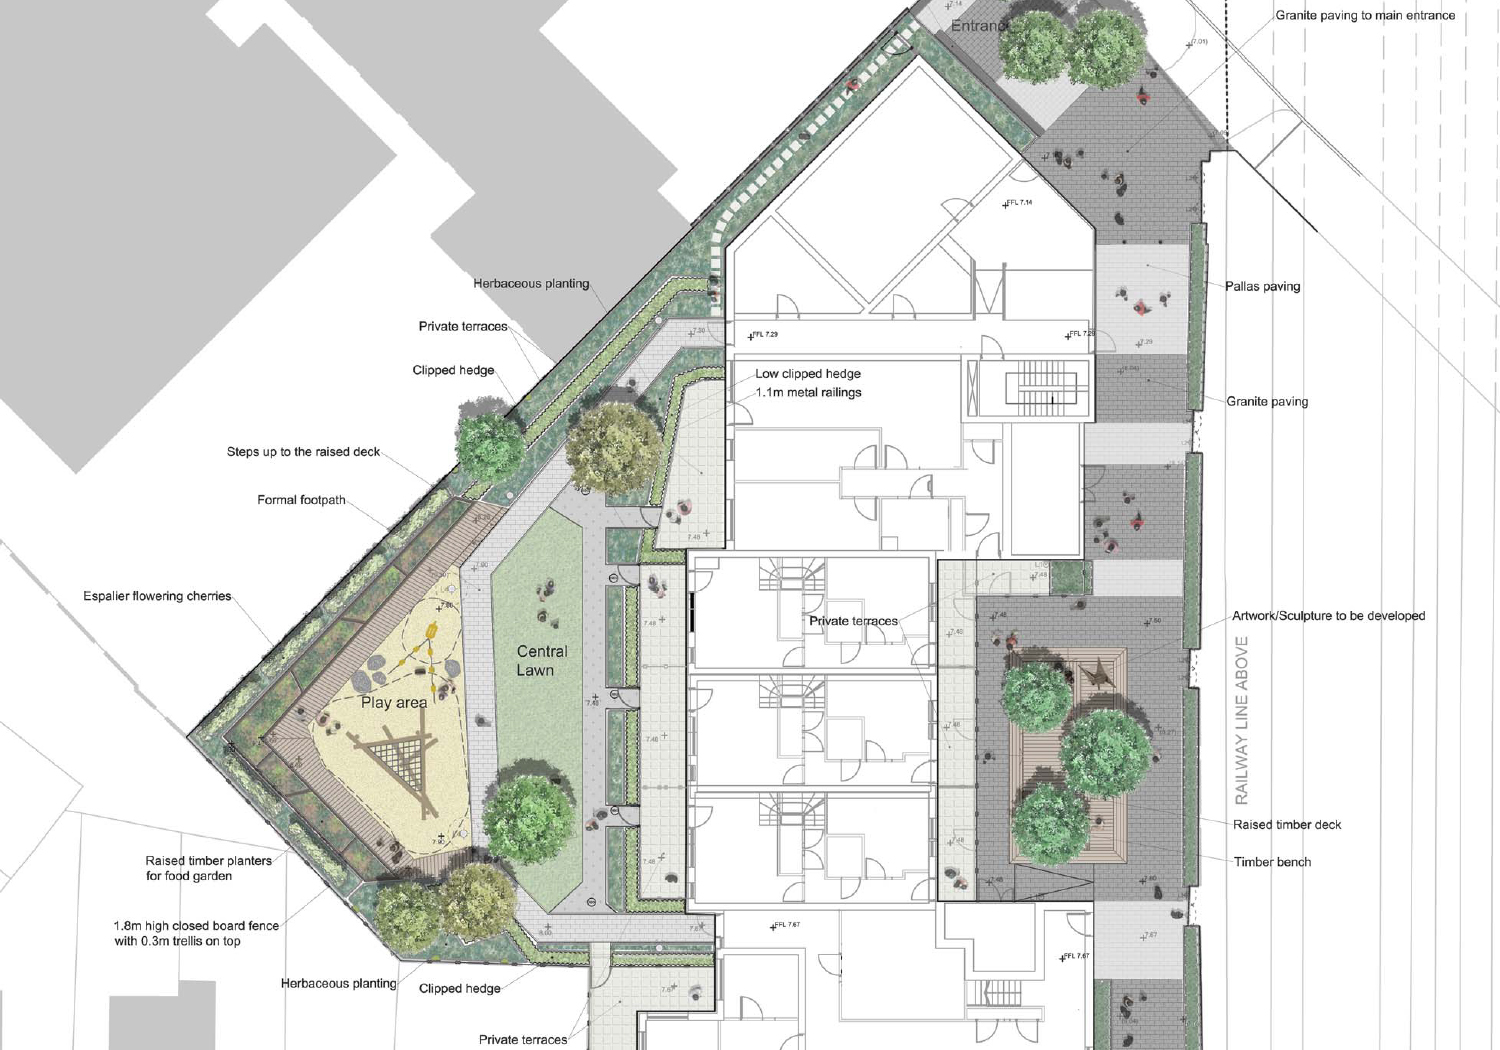 Projects-Residential-LoampitVale-Masterplan-1500x1050